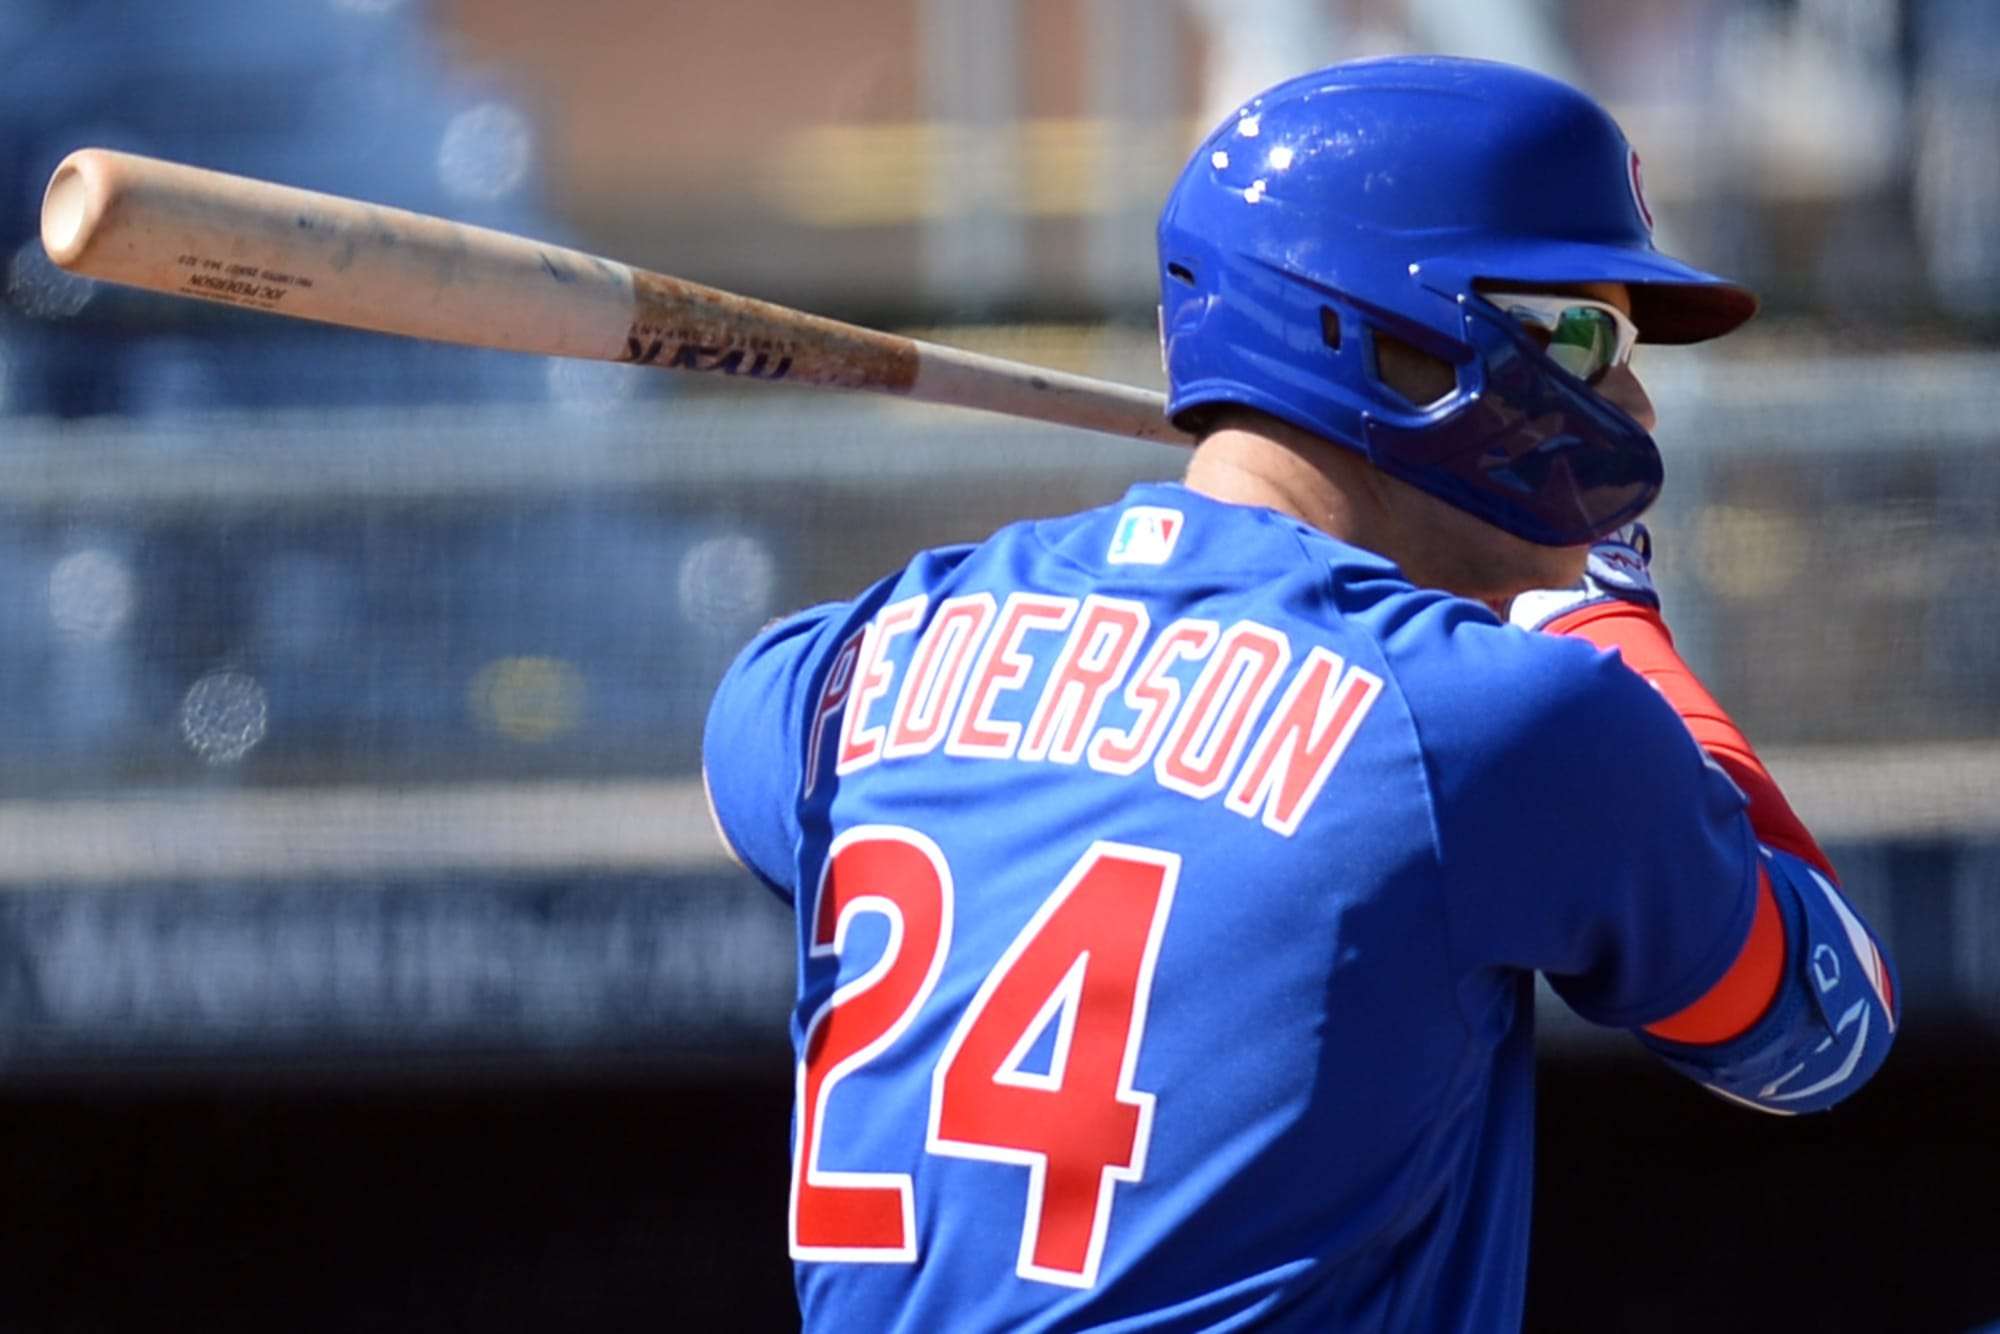 Cubs fans furious with Joc Pederson after epic choke job against Braves